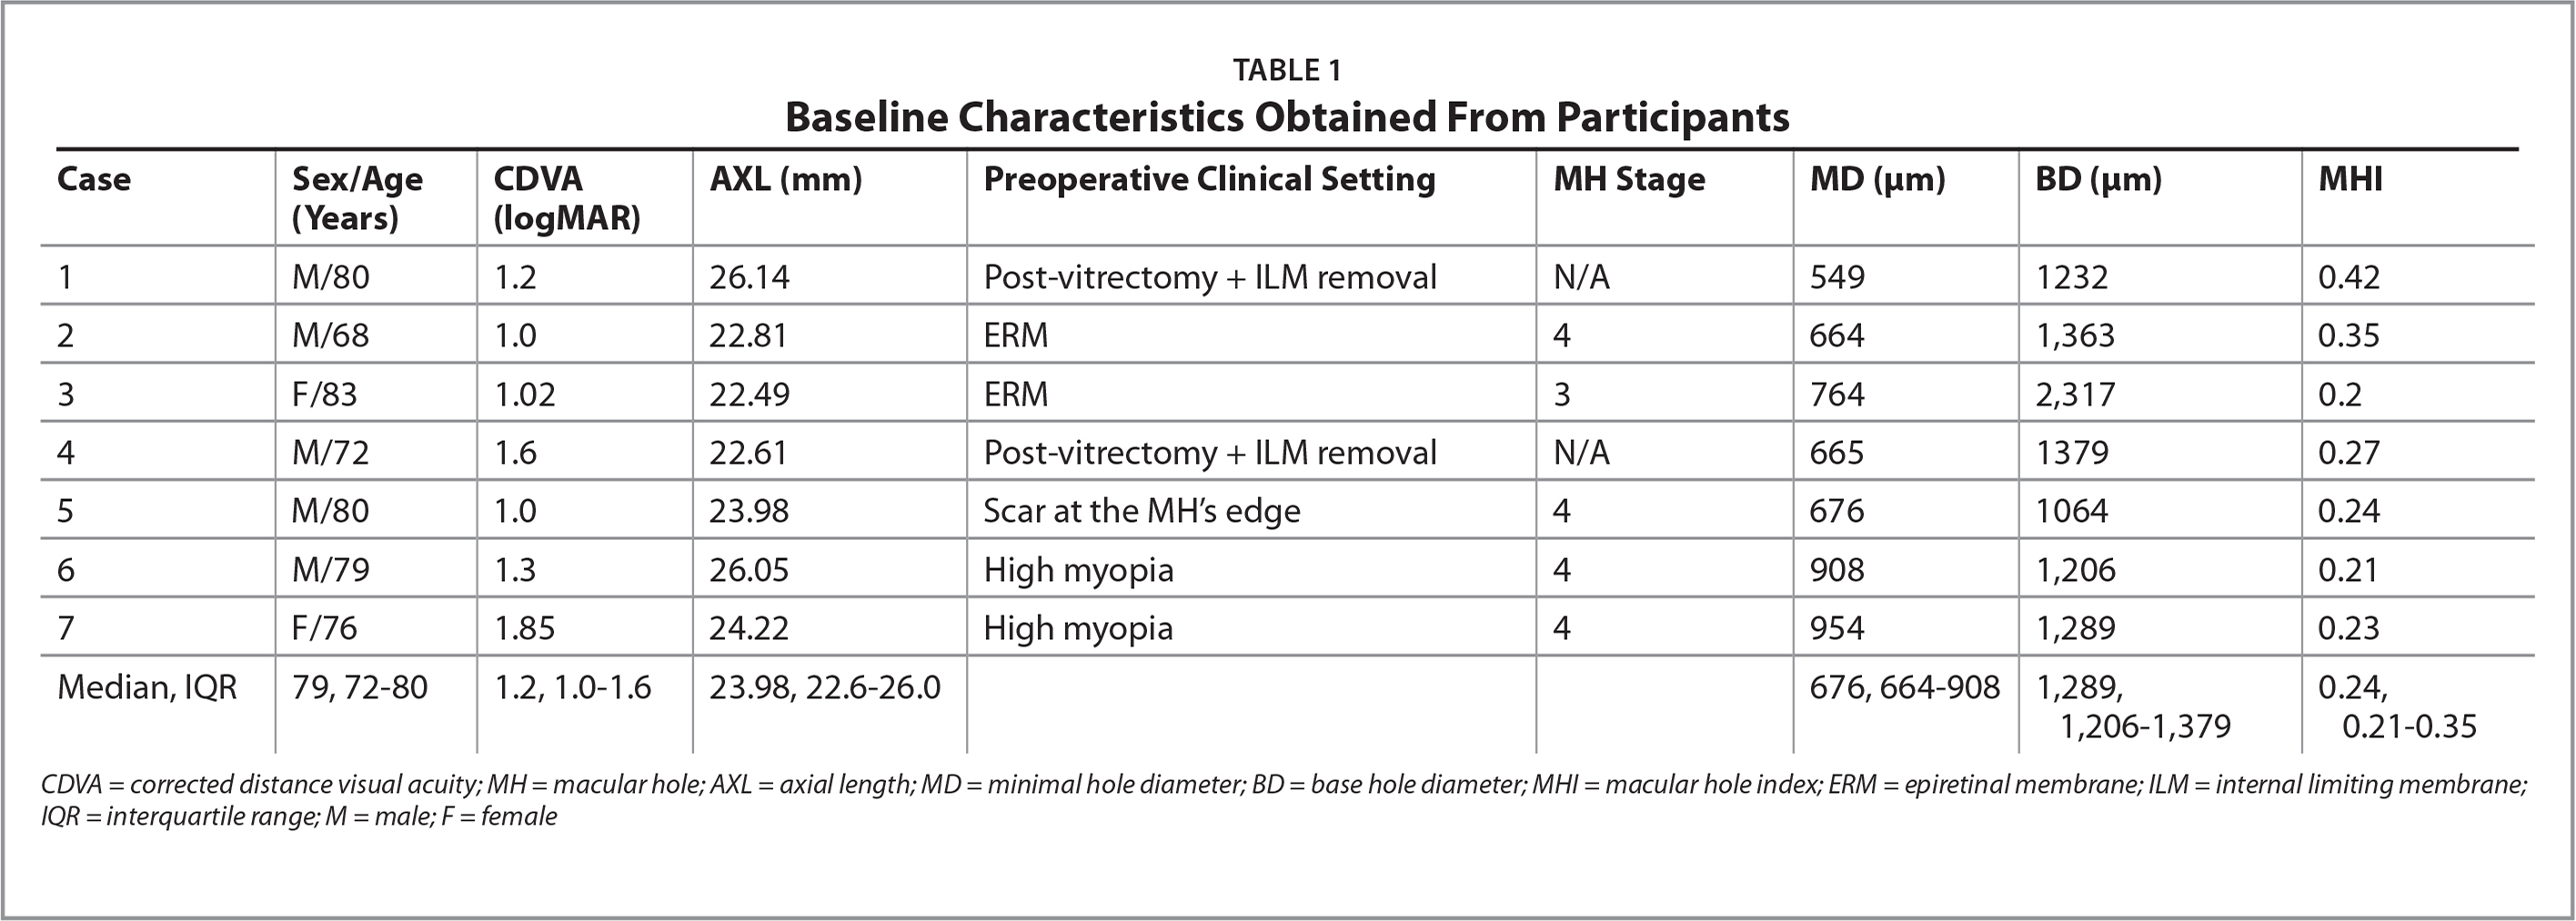 Baseline Characteristics Obtained From Participants